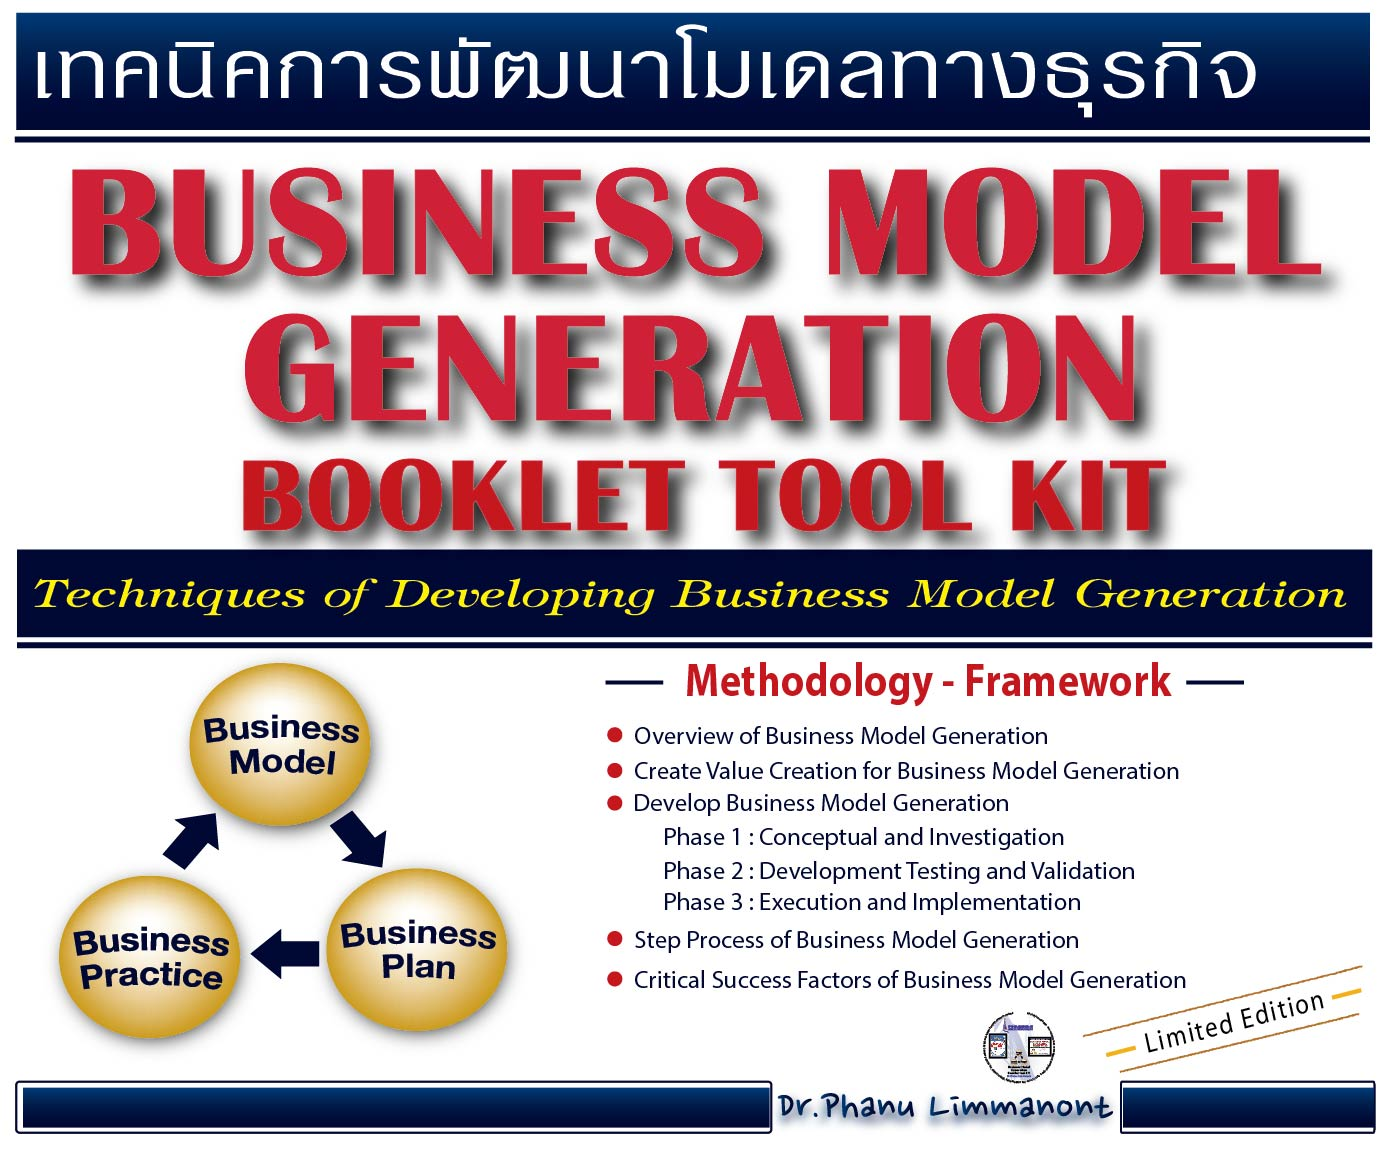 e business types essay Check this list of fresh and intriguing business essay questions to choose those that truly interest you home how it works pricing samples faq contact us blog here are 5 types of business essays topics you should never use if you want to succeed and get a high grade on your academic.